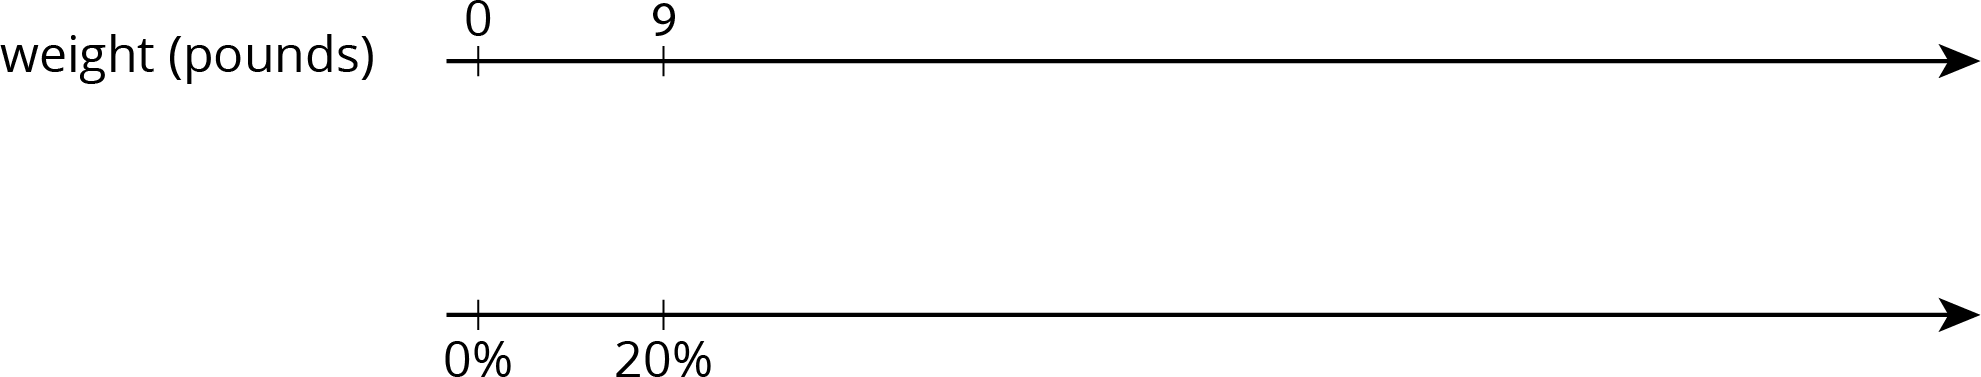 "A double number line for ""weight in pounds"" with 2 tick marks. The top number line has the number 0 on the first tick mark and 9 on the second. The bottom number line has 0 percent on the first tick mark and 20 percent on the second."